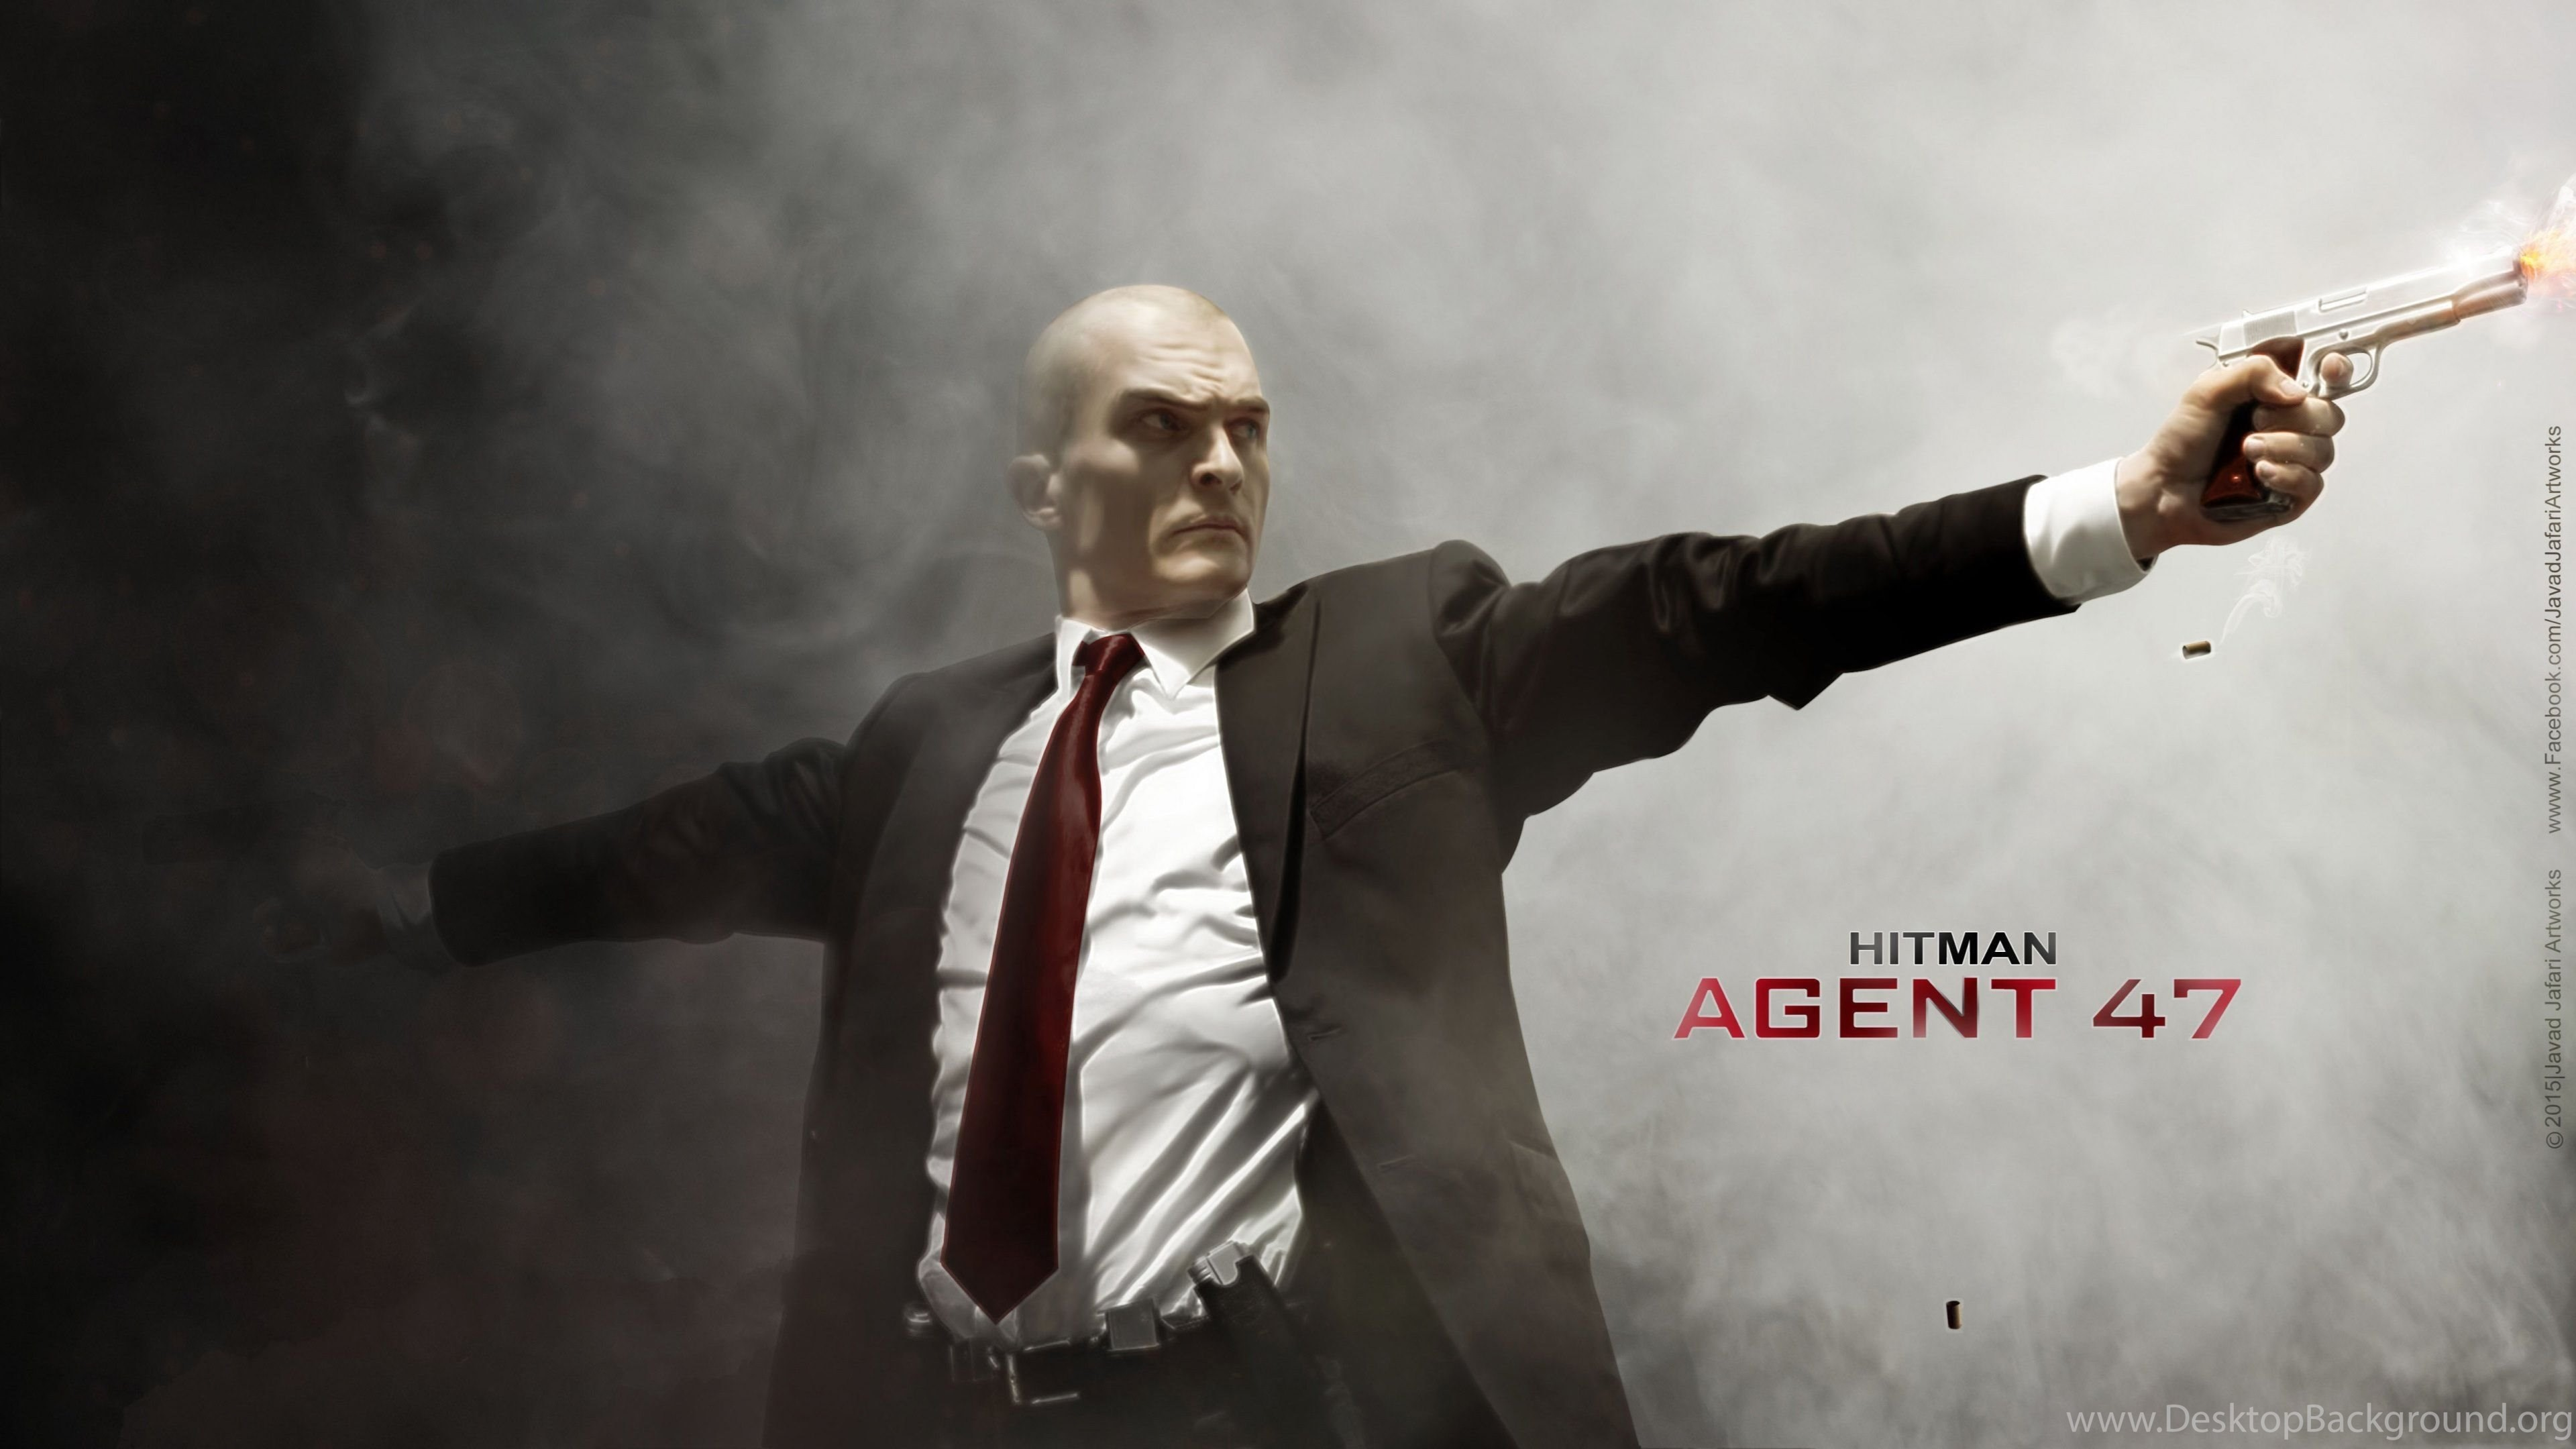 3840x2160 Hitman: Agent 47 Wallpapers :: HD Wallpapers